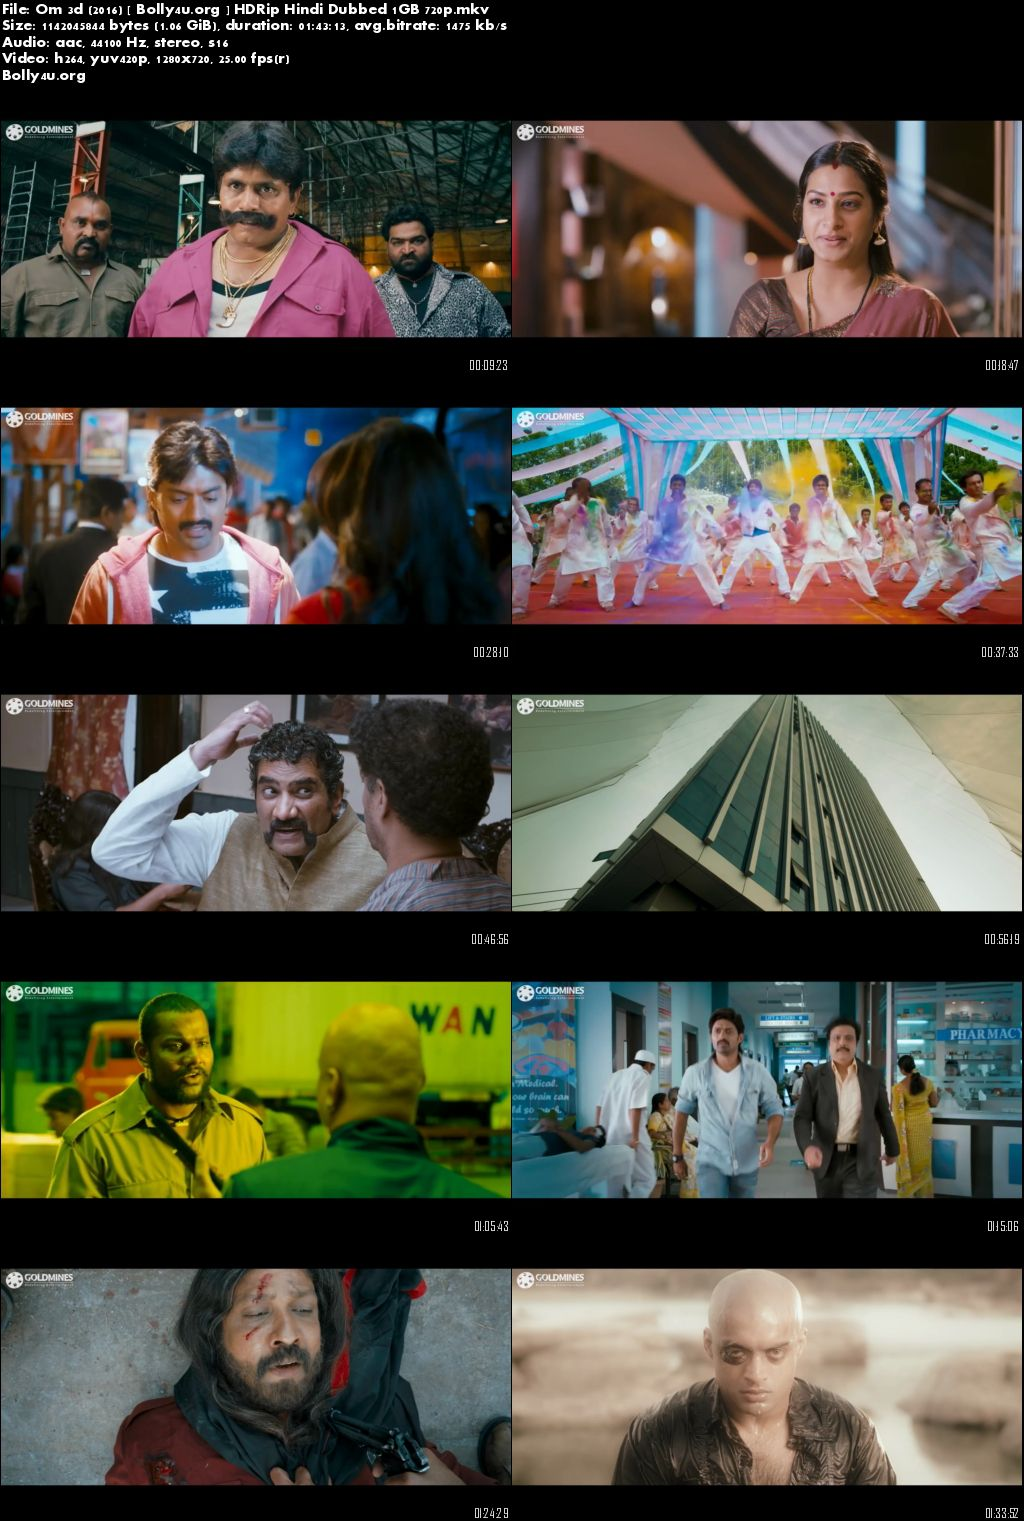 Om 3D (2016) HDRip 480p Hindi Dubbed 300MB Download